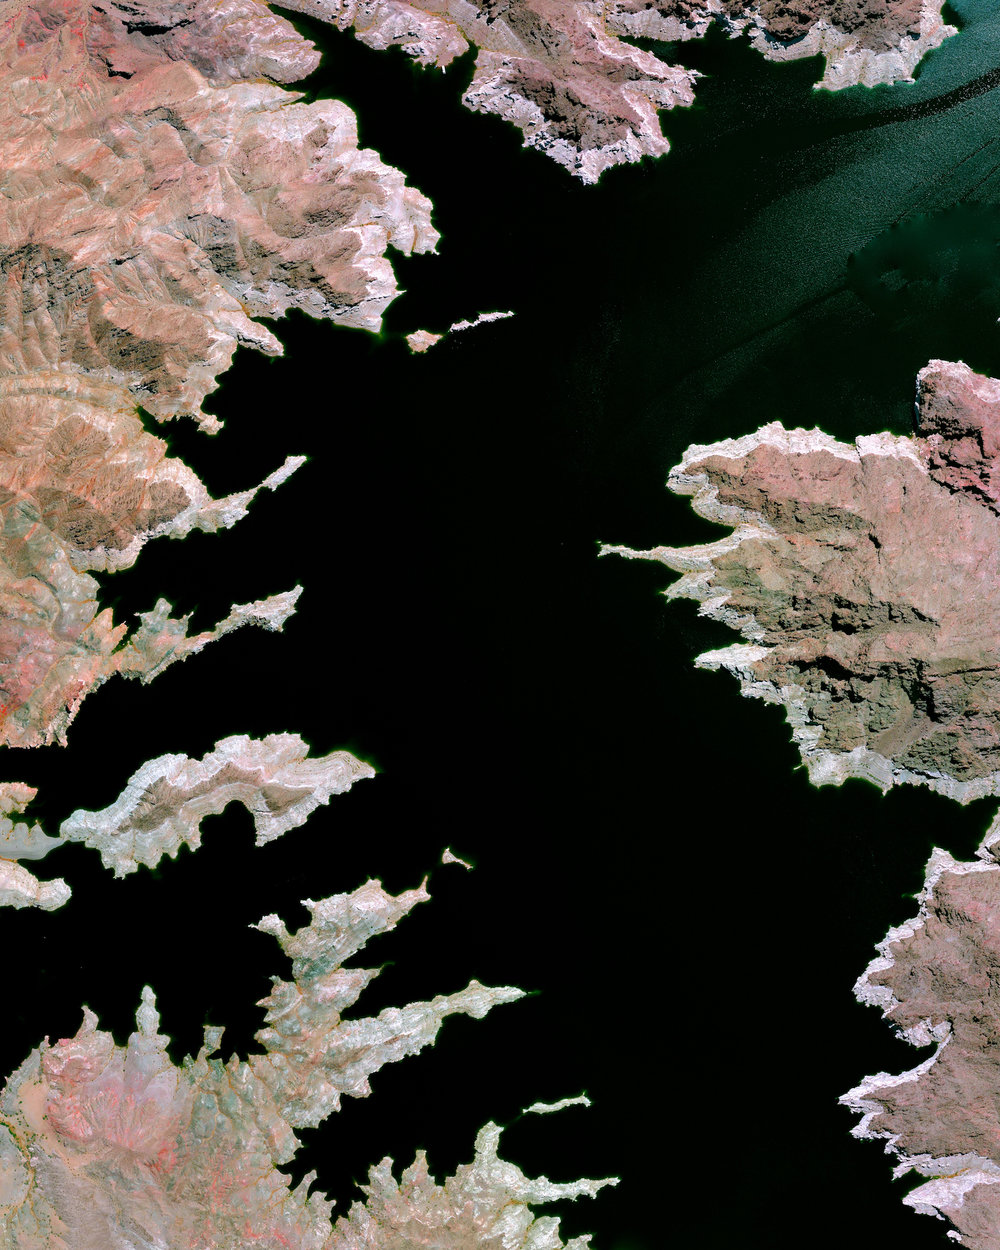 """Lake Mead — located on the Colorado River 24 miles (38 km) southeast of Las Vegas, Nevada — is the largest reservoir in the United States. The lake was formed with the creation of the Hoover Dam in the 1930s. Due to a combination of drought and increased water demand in the surrounding states (specifically California, Nevada, New Mexico, and Arizona) the lake's water level has been lowering drastically in recent years. This decreasing water level exposes the white shoreline that is visible in this Overview.  36°15'00.0""""N, 114°23'24.0""""W  Source imagery: DigitalGlobe"""